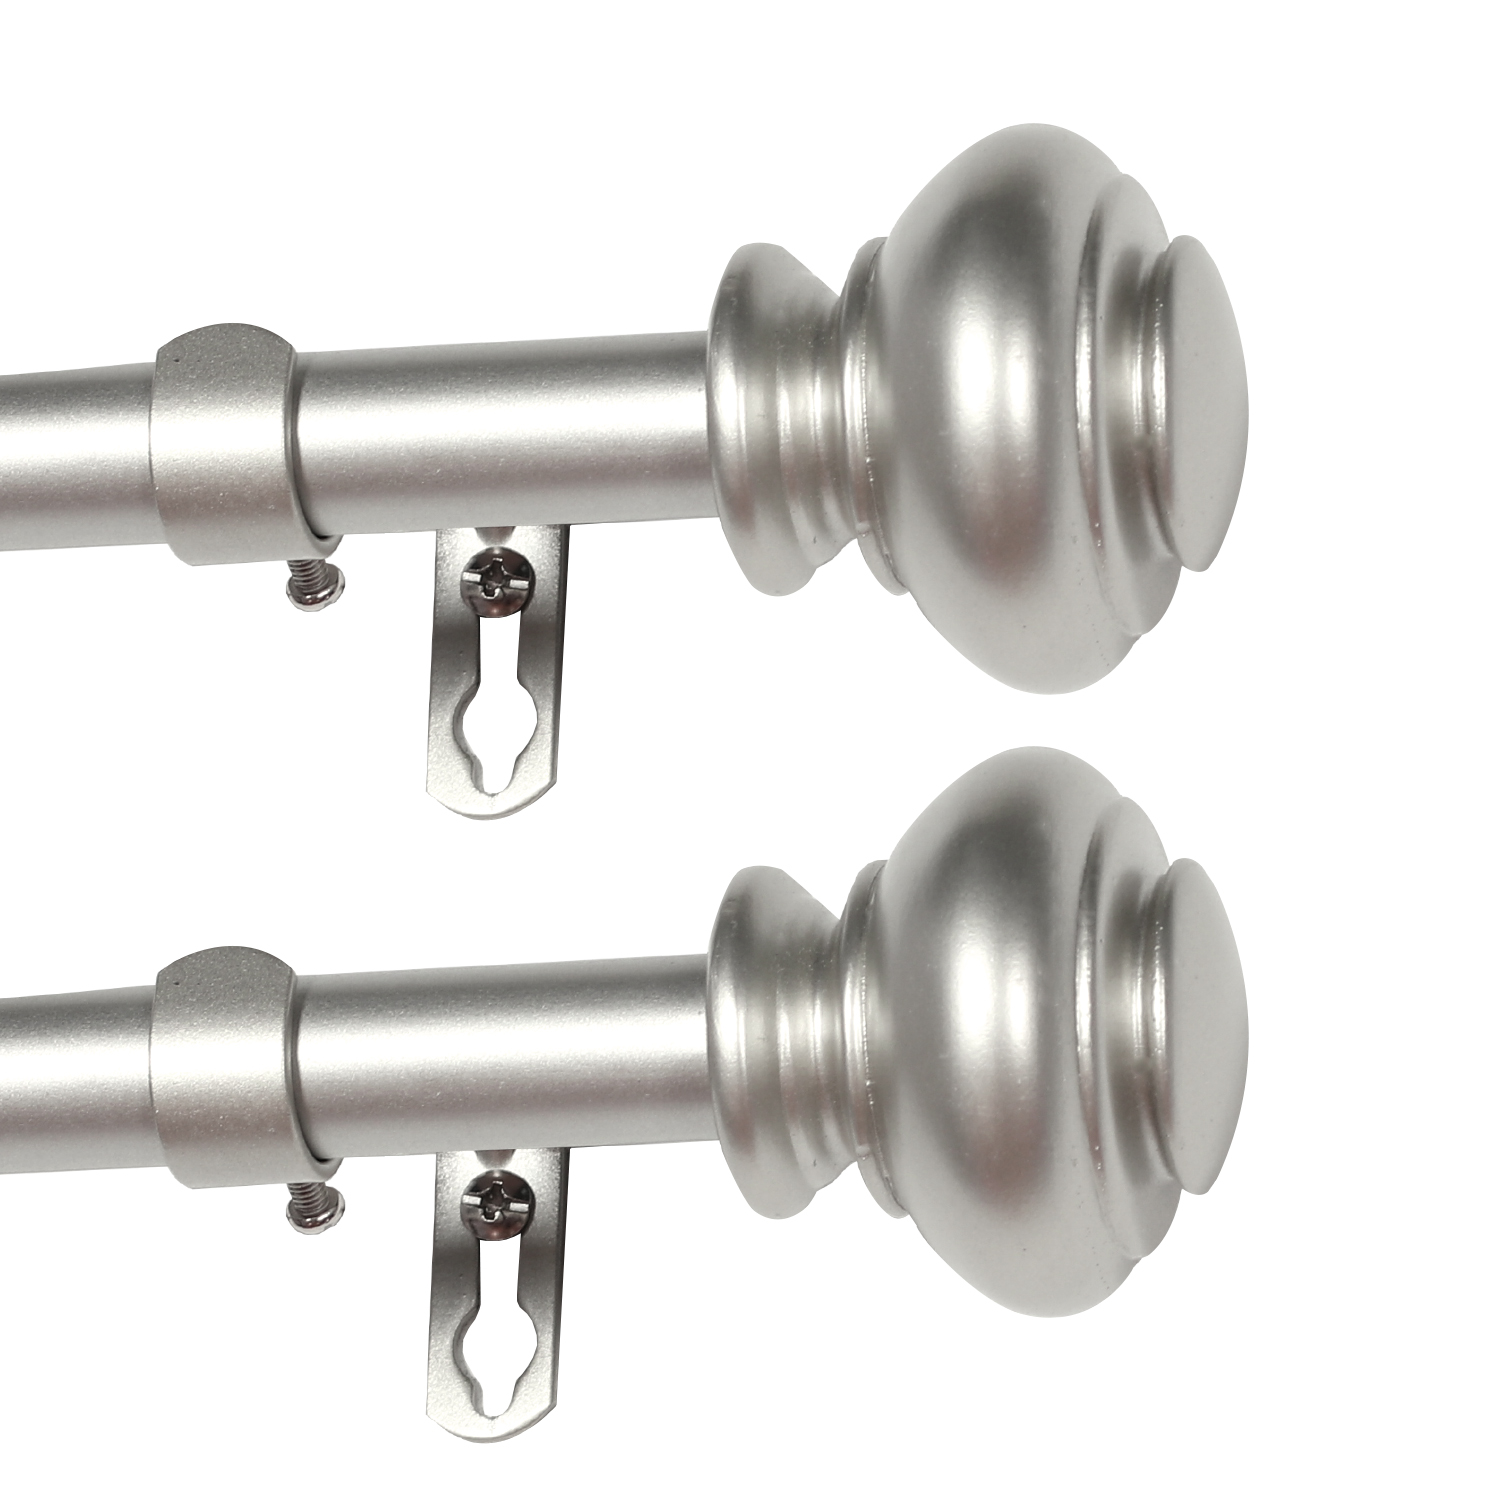 easy install decorative single curtain rod 3 4 inch diameter window treatment single rod set 2 pack adjustable length from 66 to 120 inch nickel